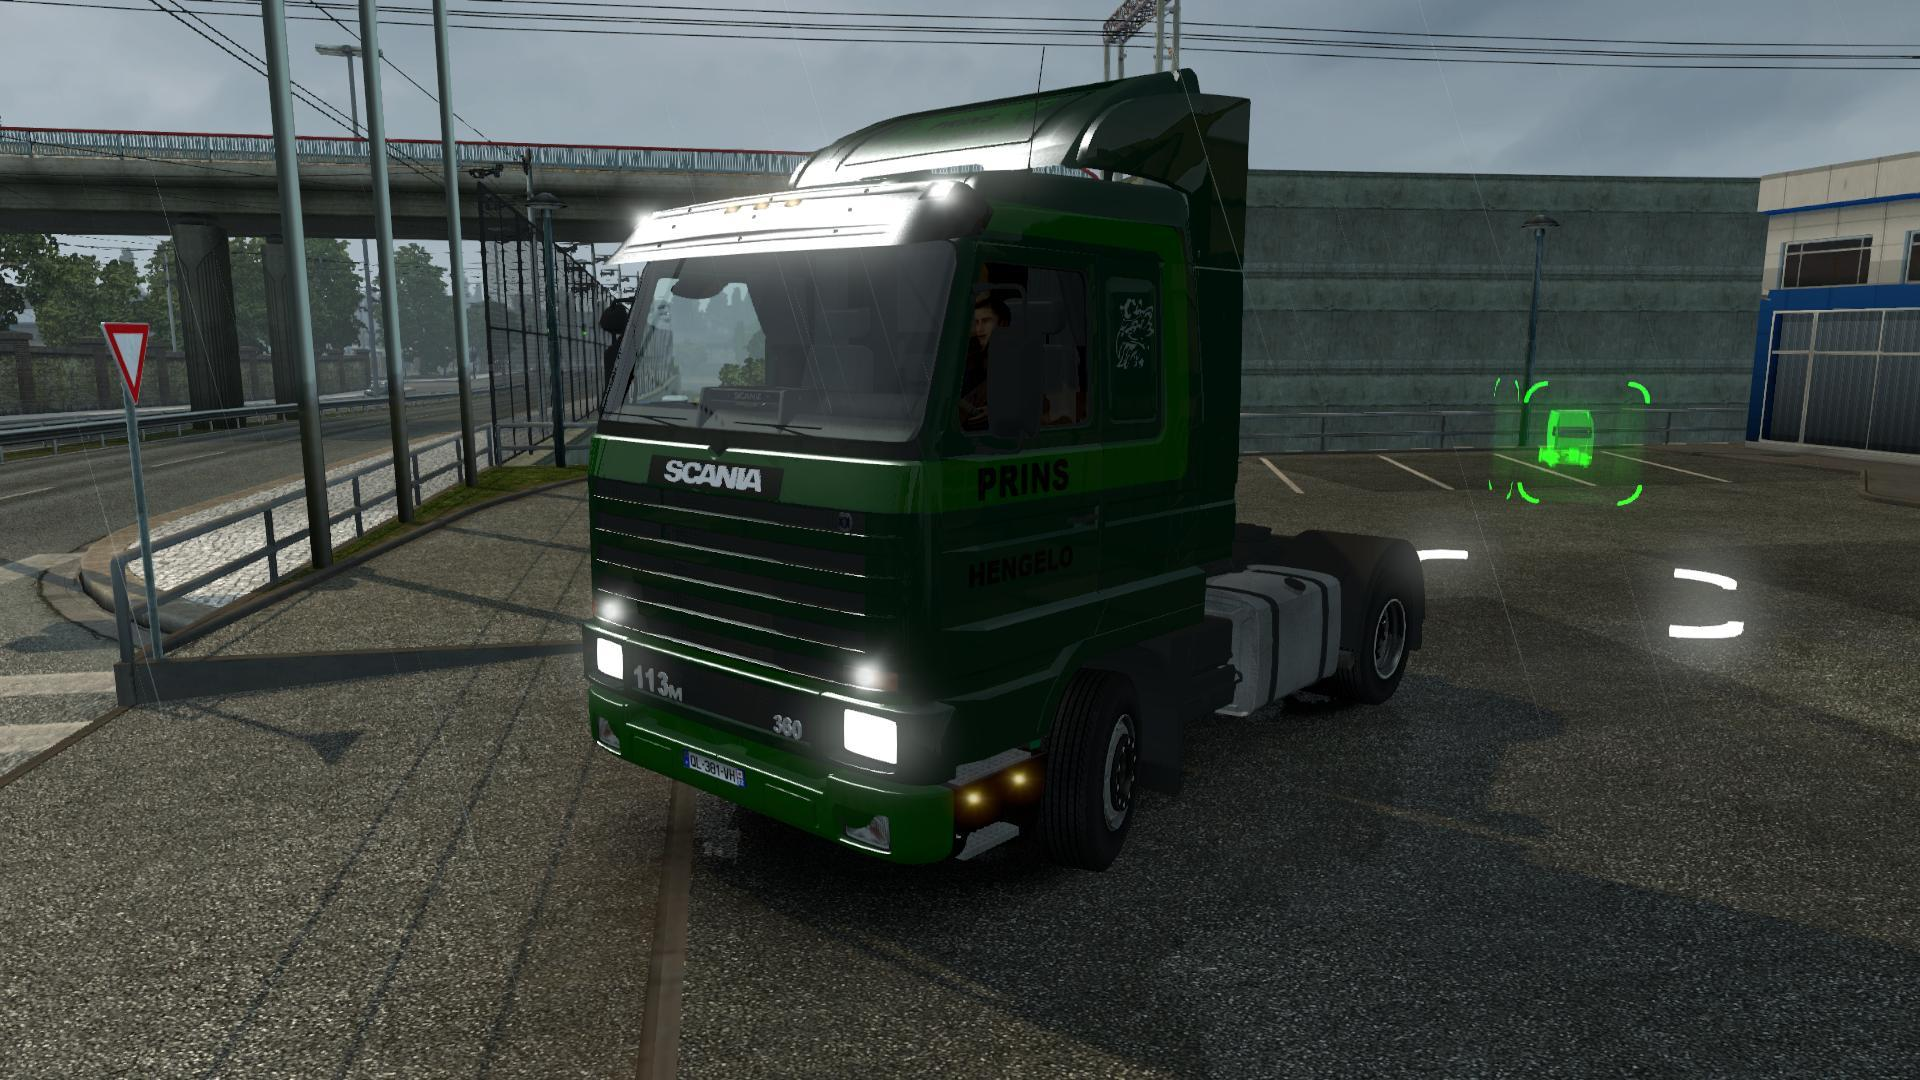 scania 143m 420 ets2 mods euro truck simulator 2 mods. Black Bedroom Furniture Sets. Home Design Ideas